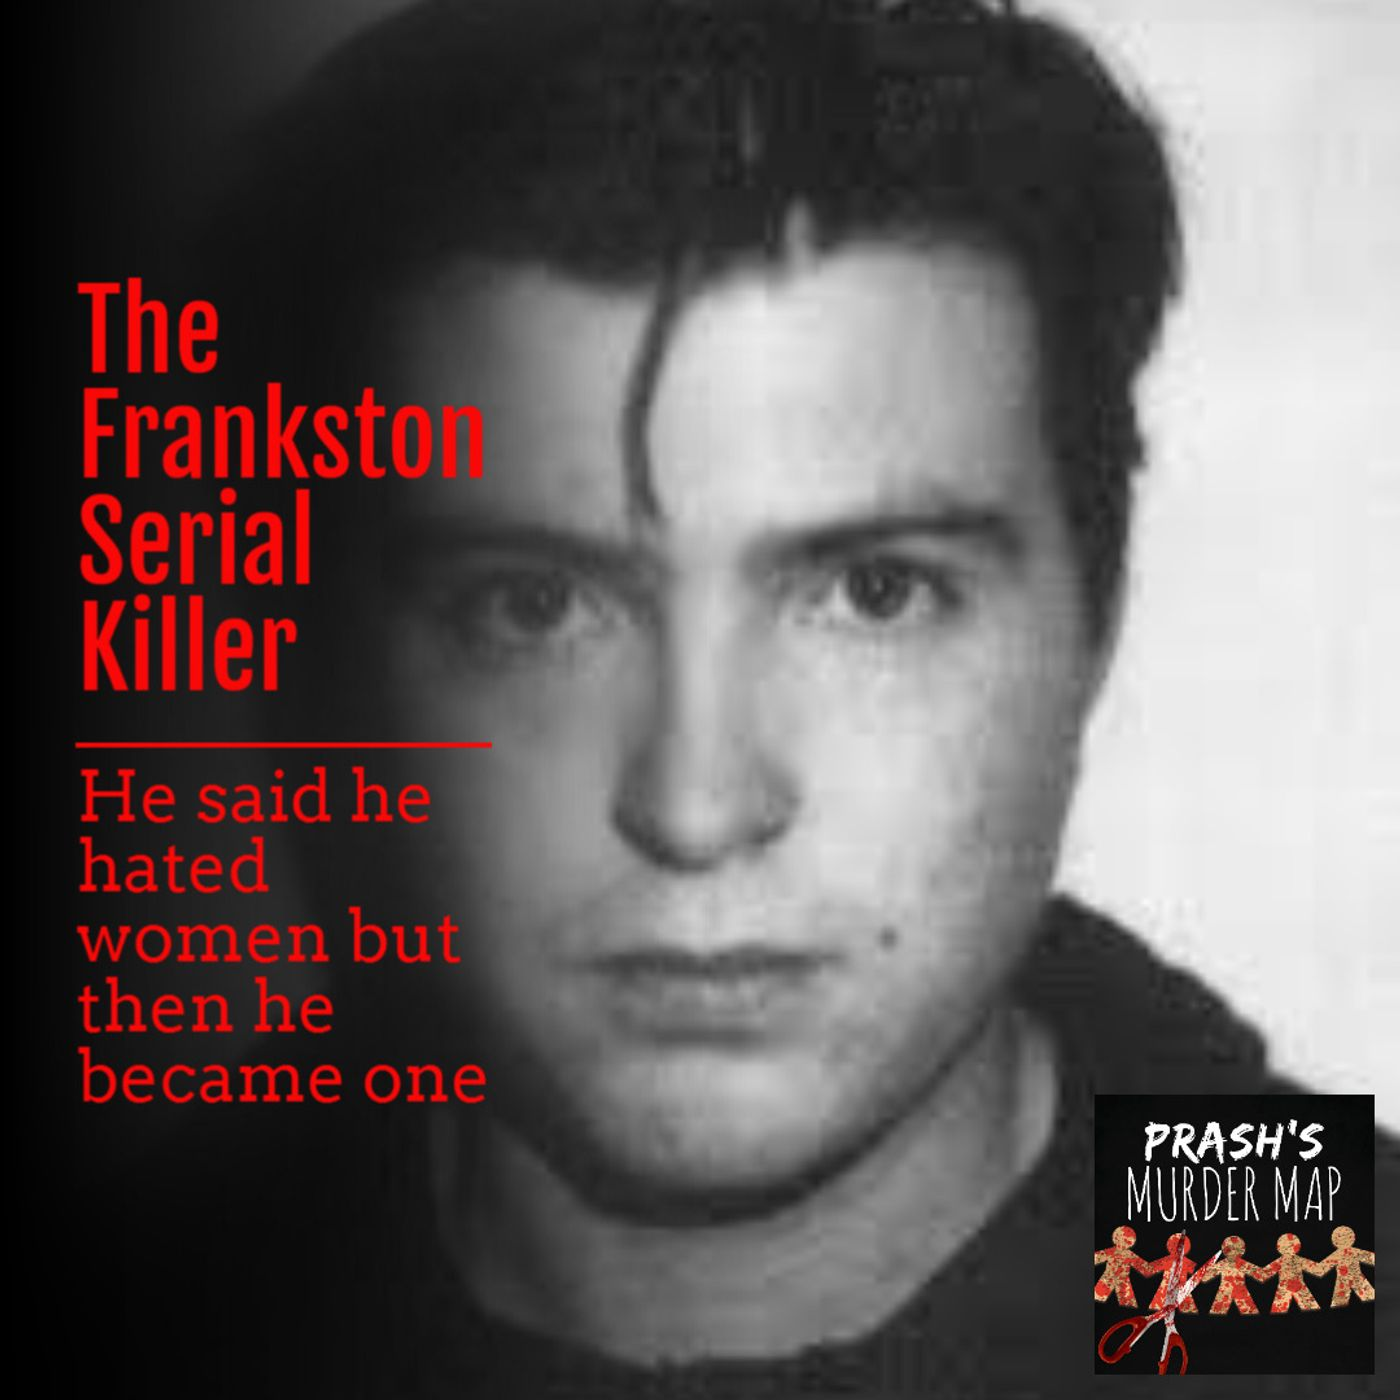 7 | The Frankston Serial Killer